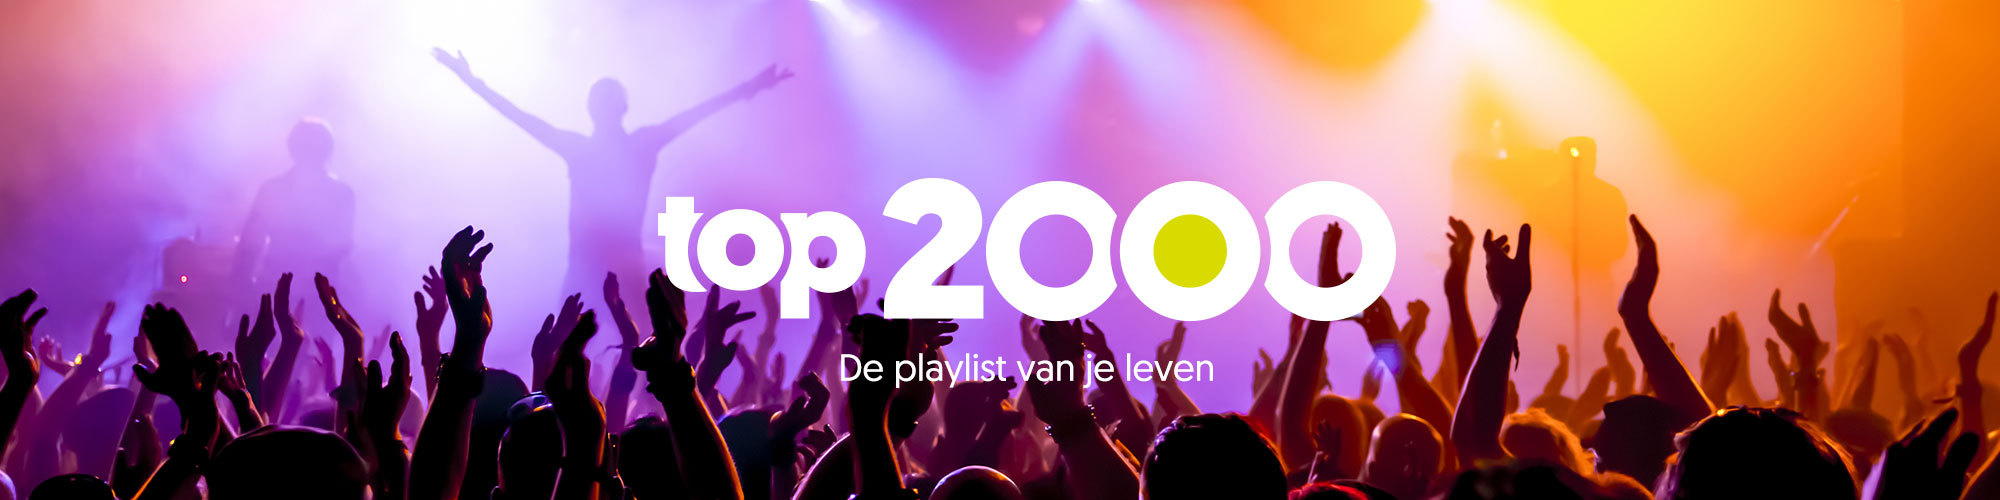 Joe carrousel top2000 finaal playlistvanjeleven 9